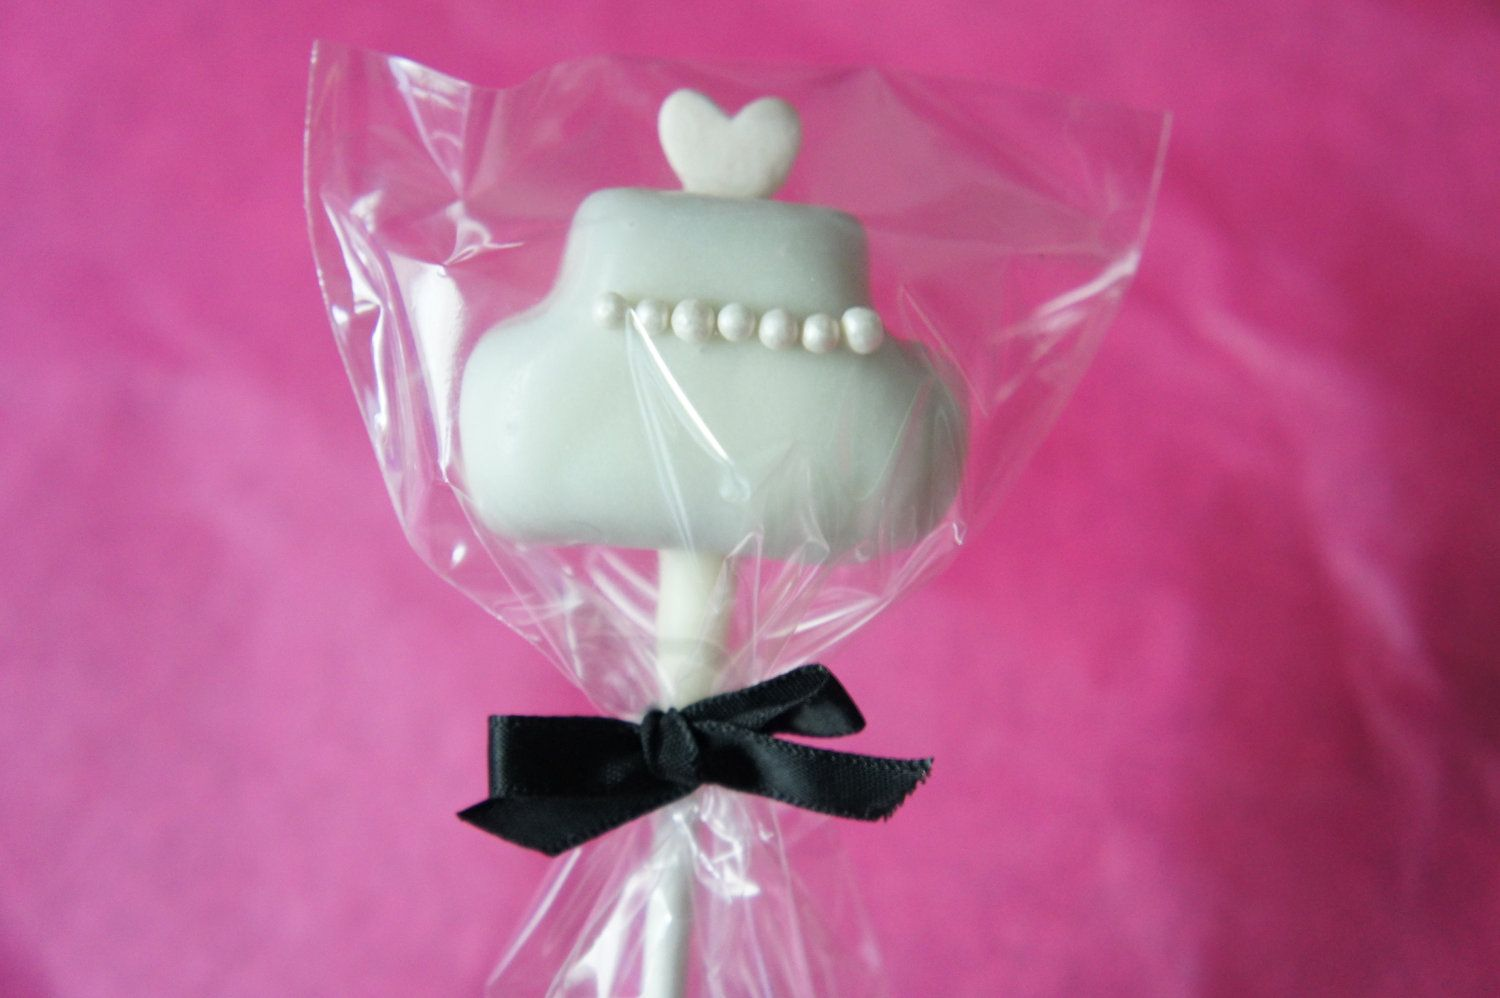 50 Edible Wedding Favors - wedding cake pops | Mrs whooo ...